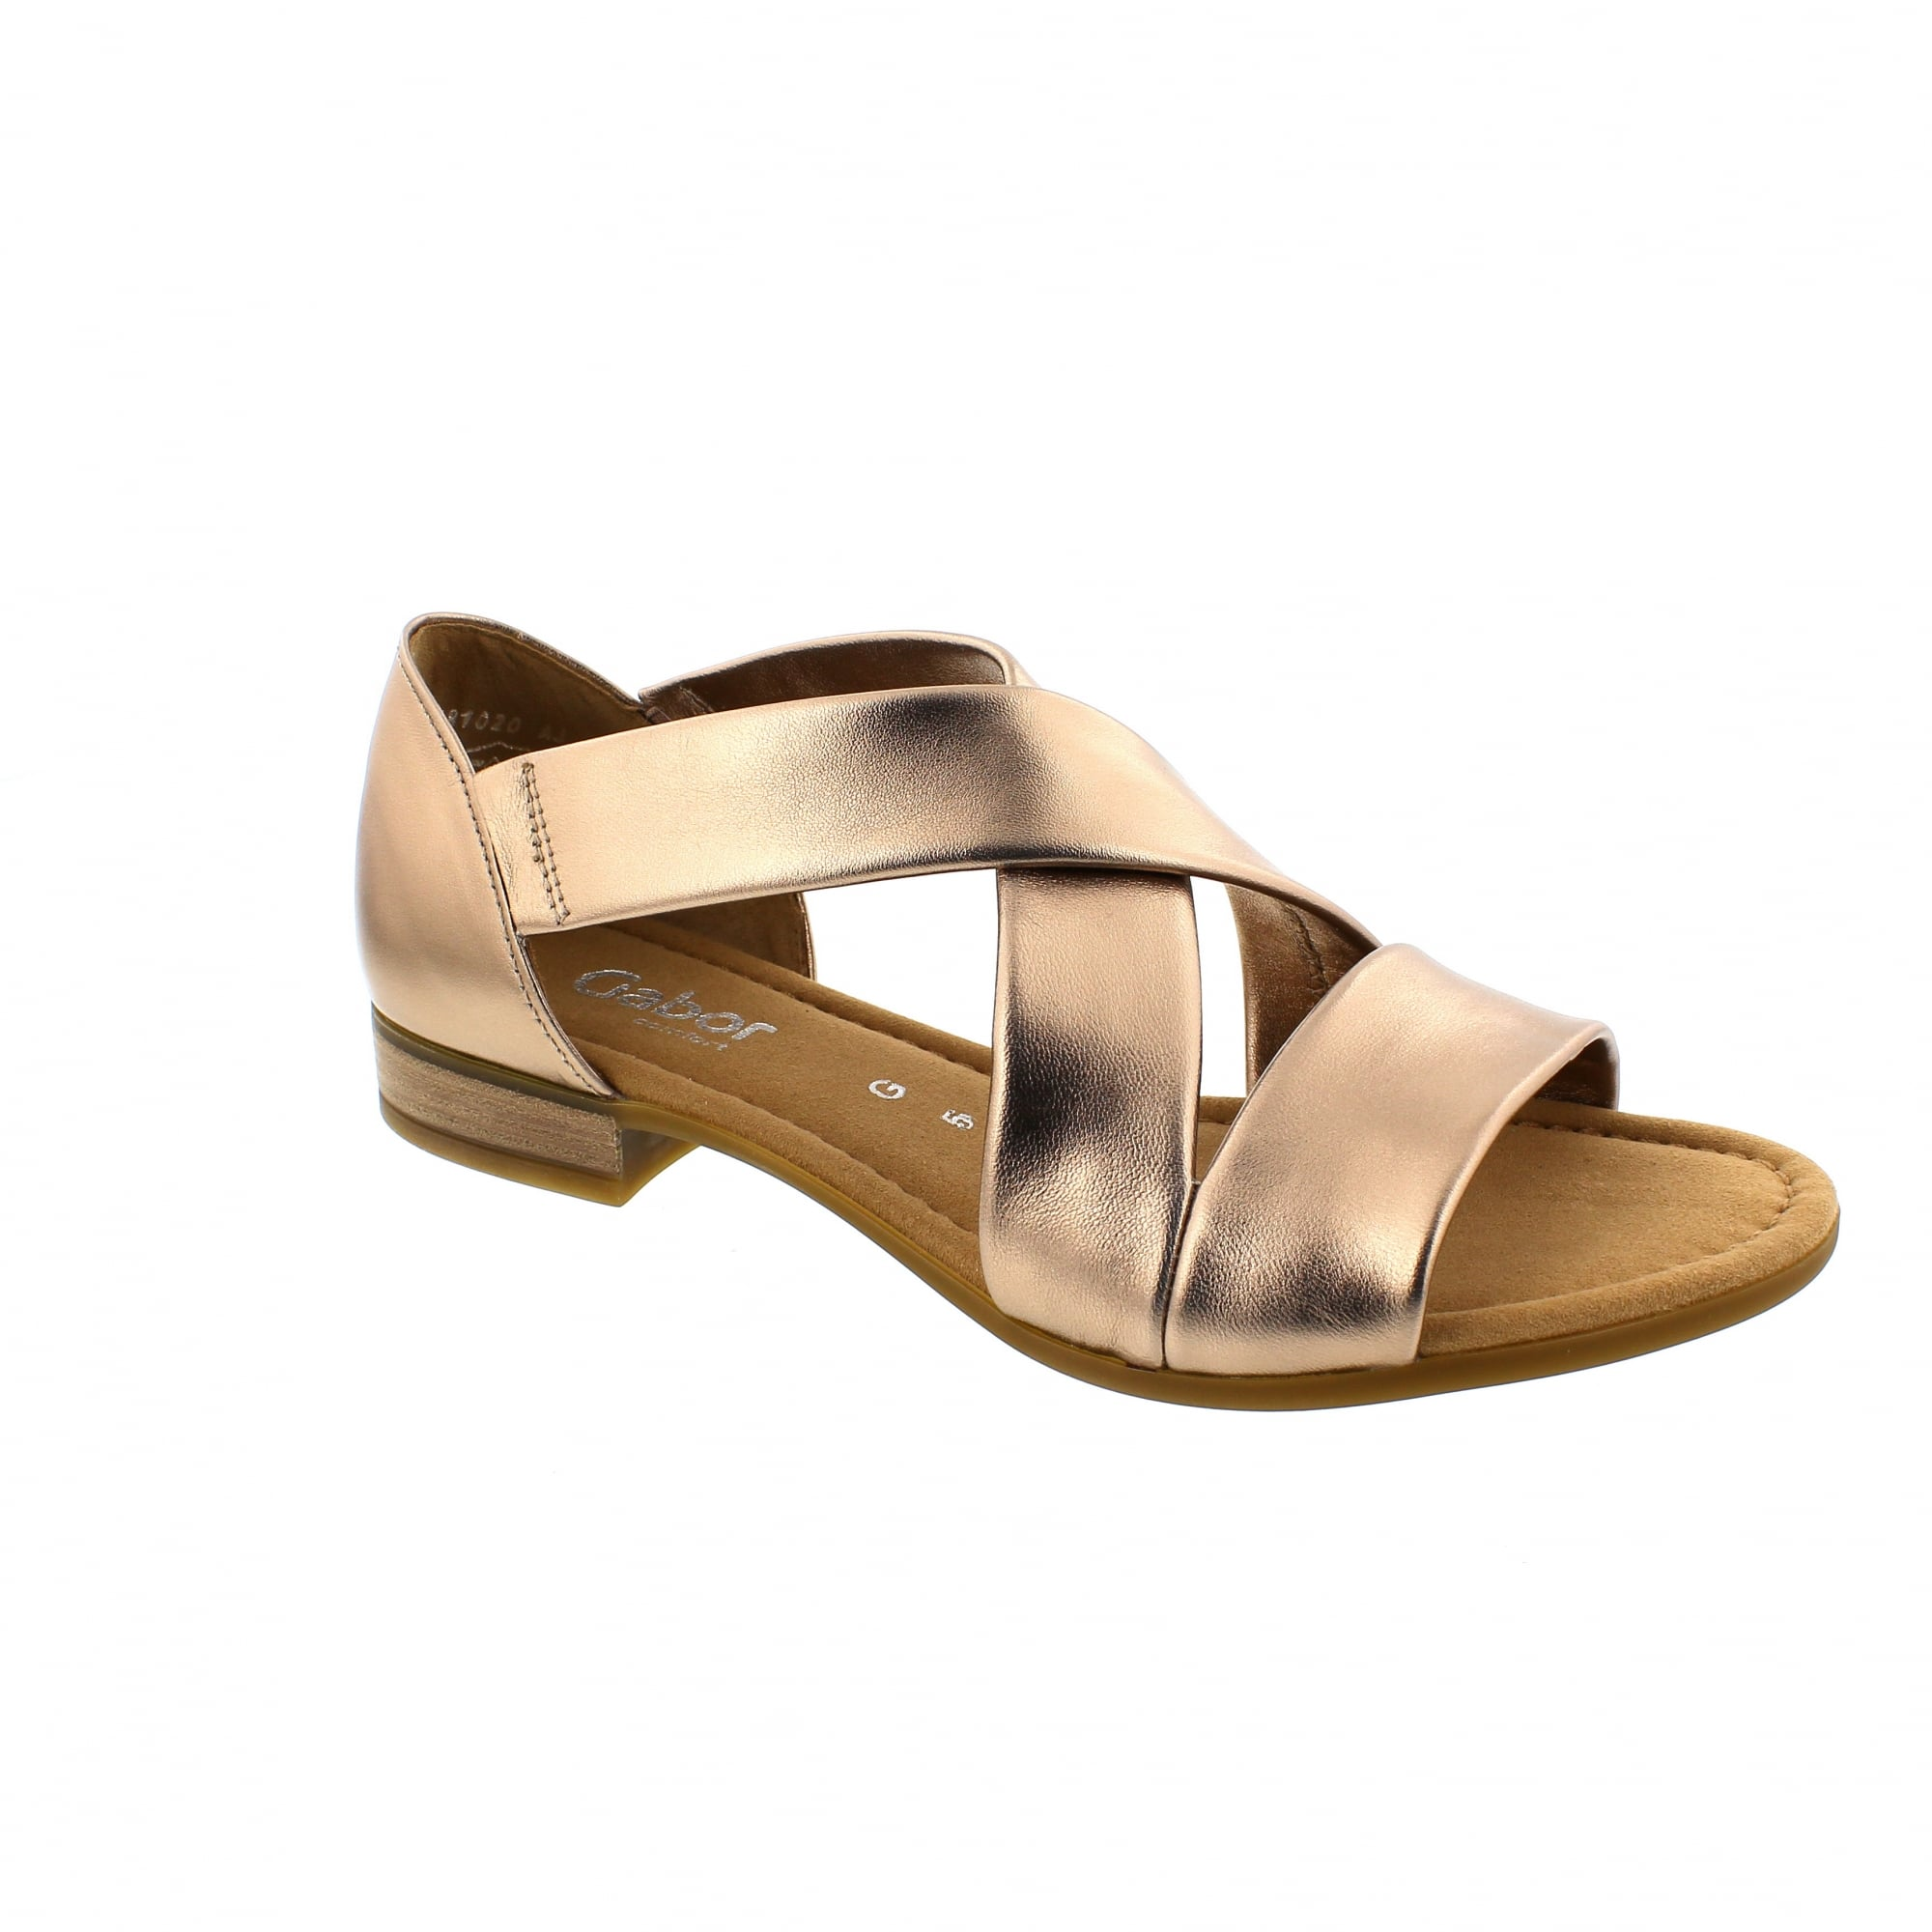 3970a5373cc Gabor Sweetly 82-761-94 Pewter Leather Womens Sandals